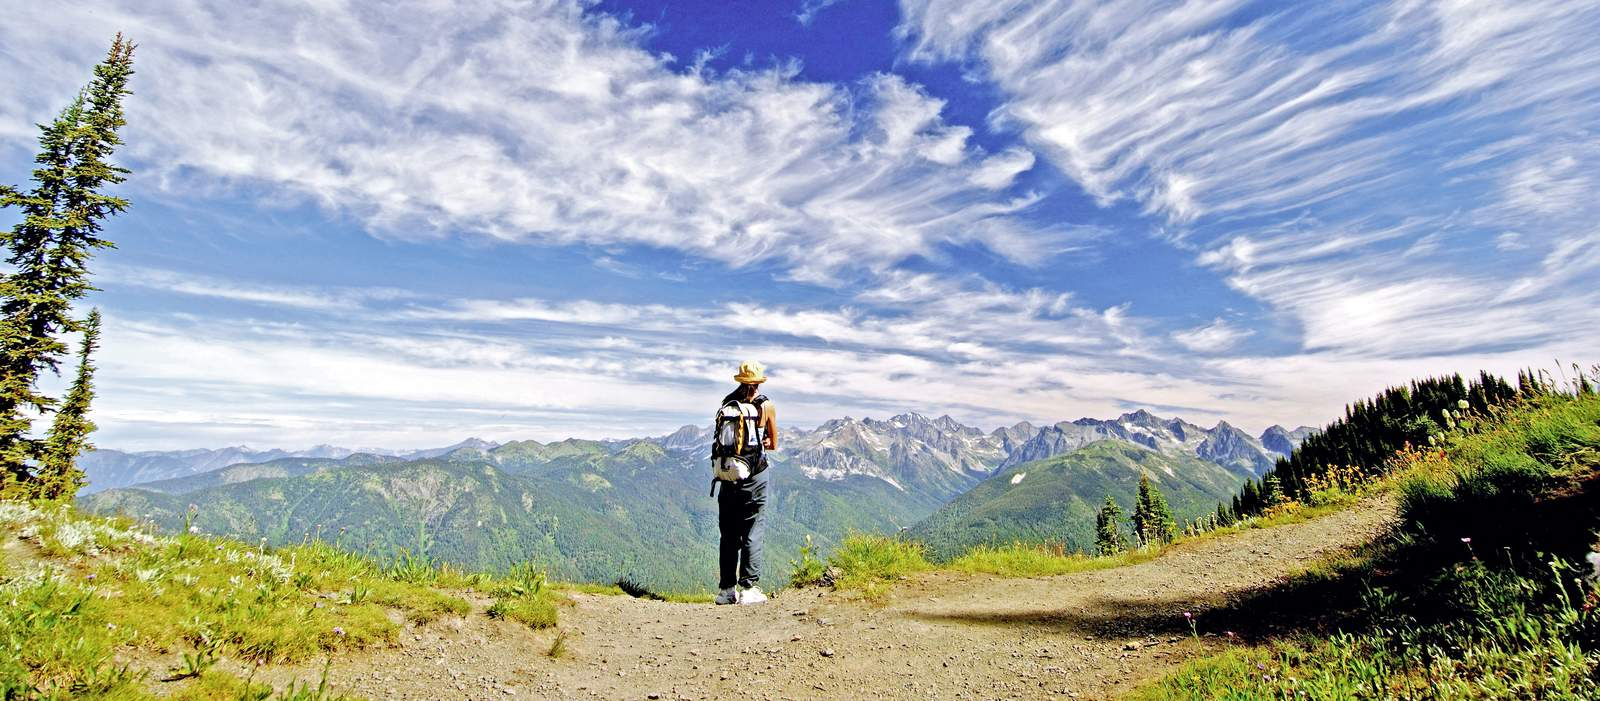 Wanderer in den Selkirk Mountains